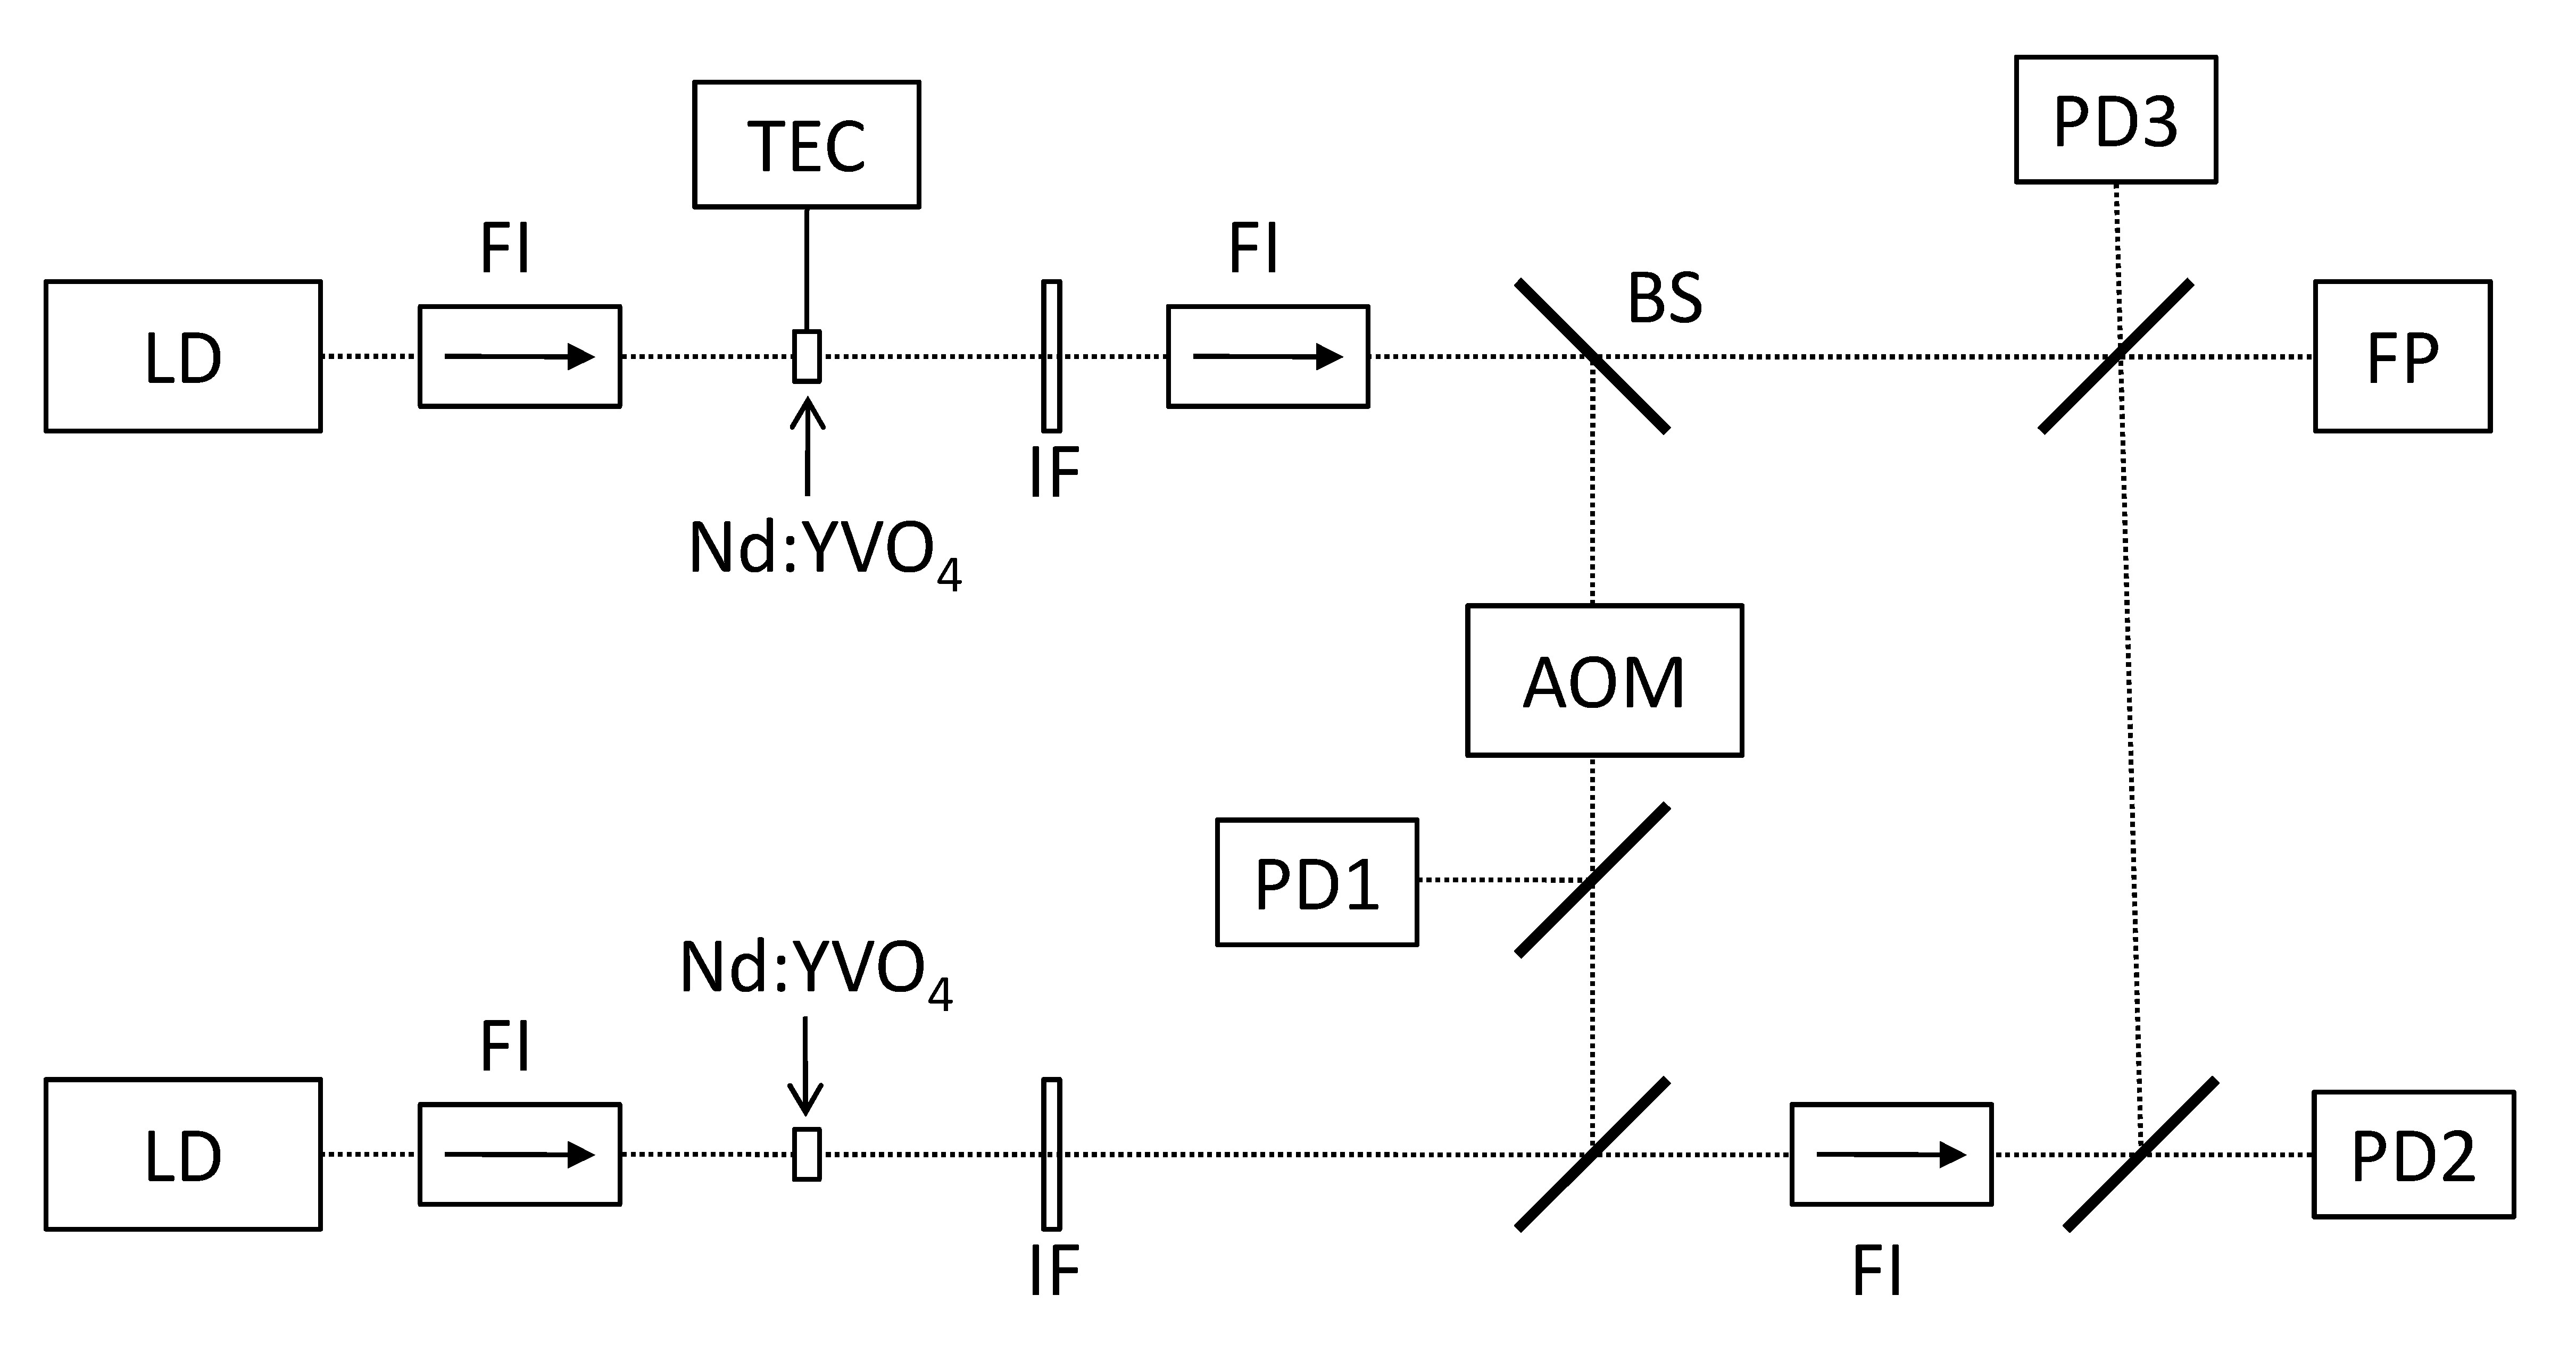 Fig. 1. Experimental setup: LD, laser diode; FI, Faraday isolator; TEC, temperature control; IF, interference filter; BS, beam splitter; AOM, acousto-optic modulator; FP, Fabry-Pérot interferometer; PD, photodetectors. Figure reproduced from [1].